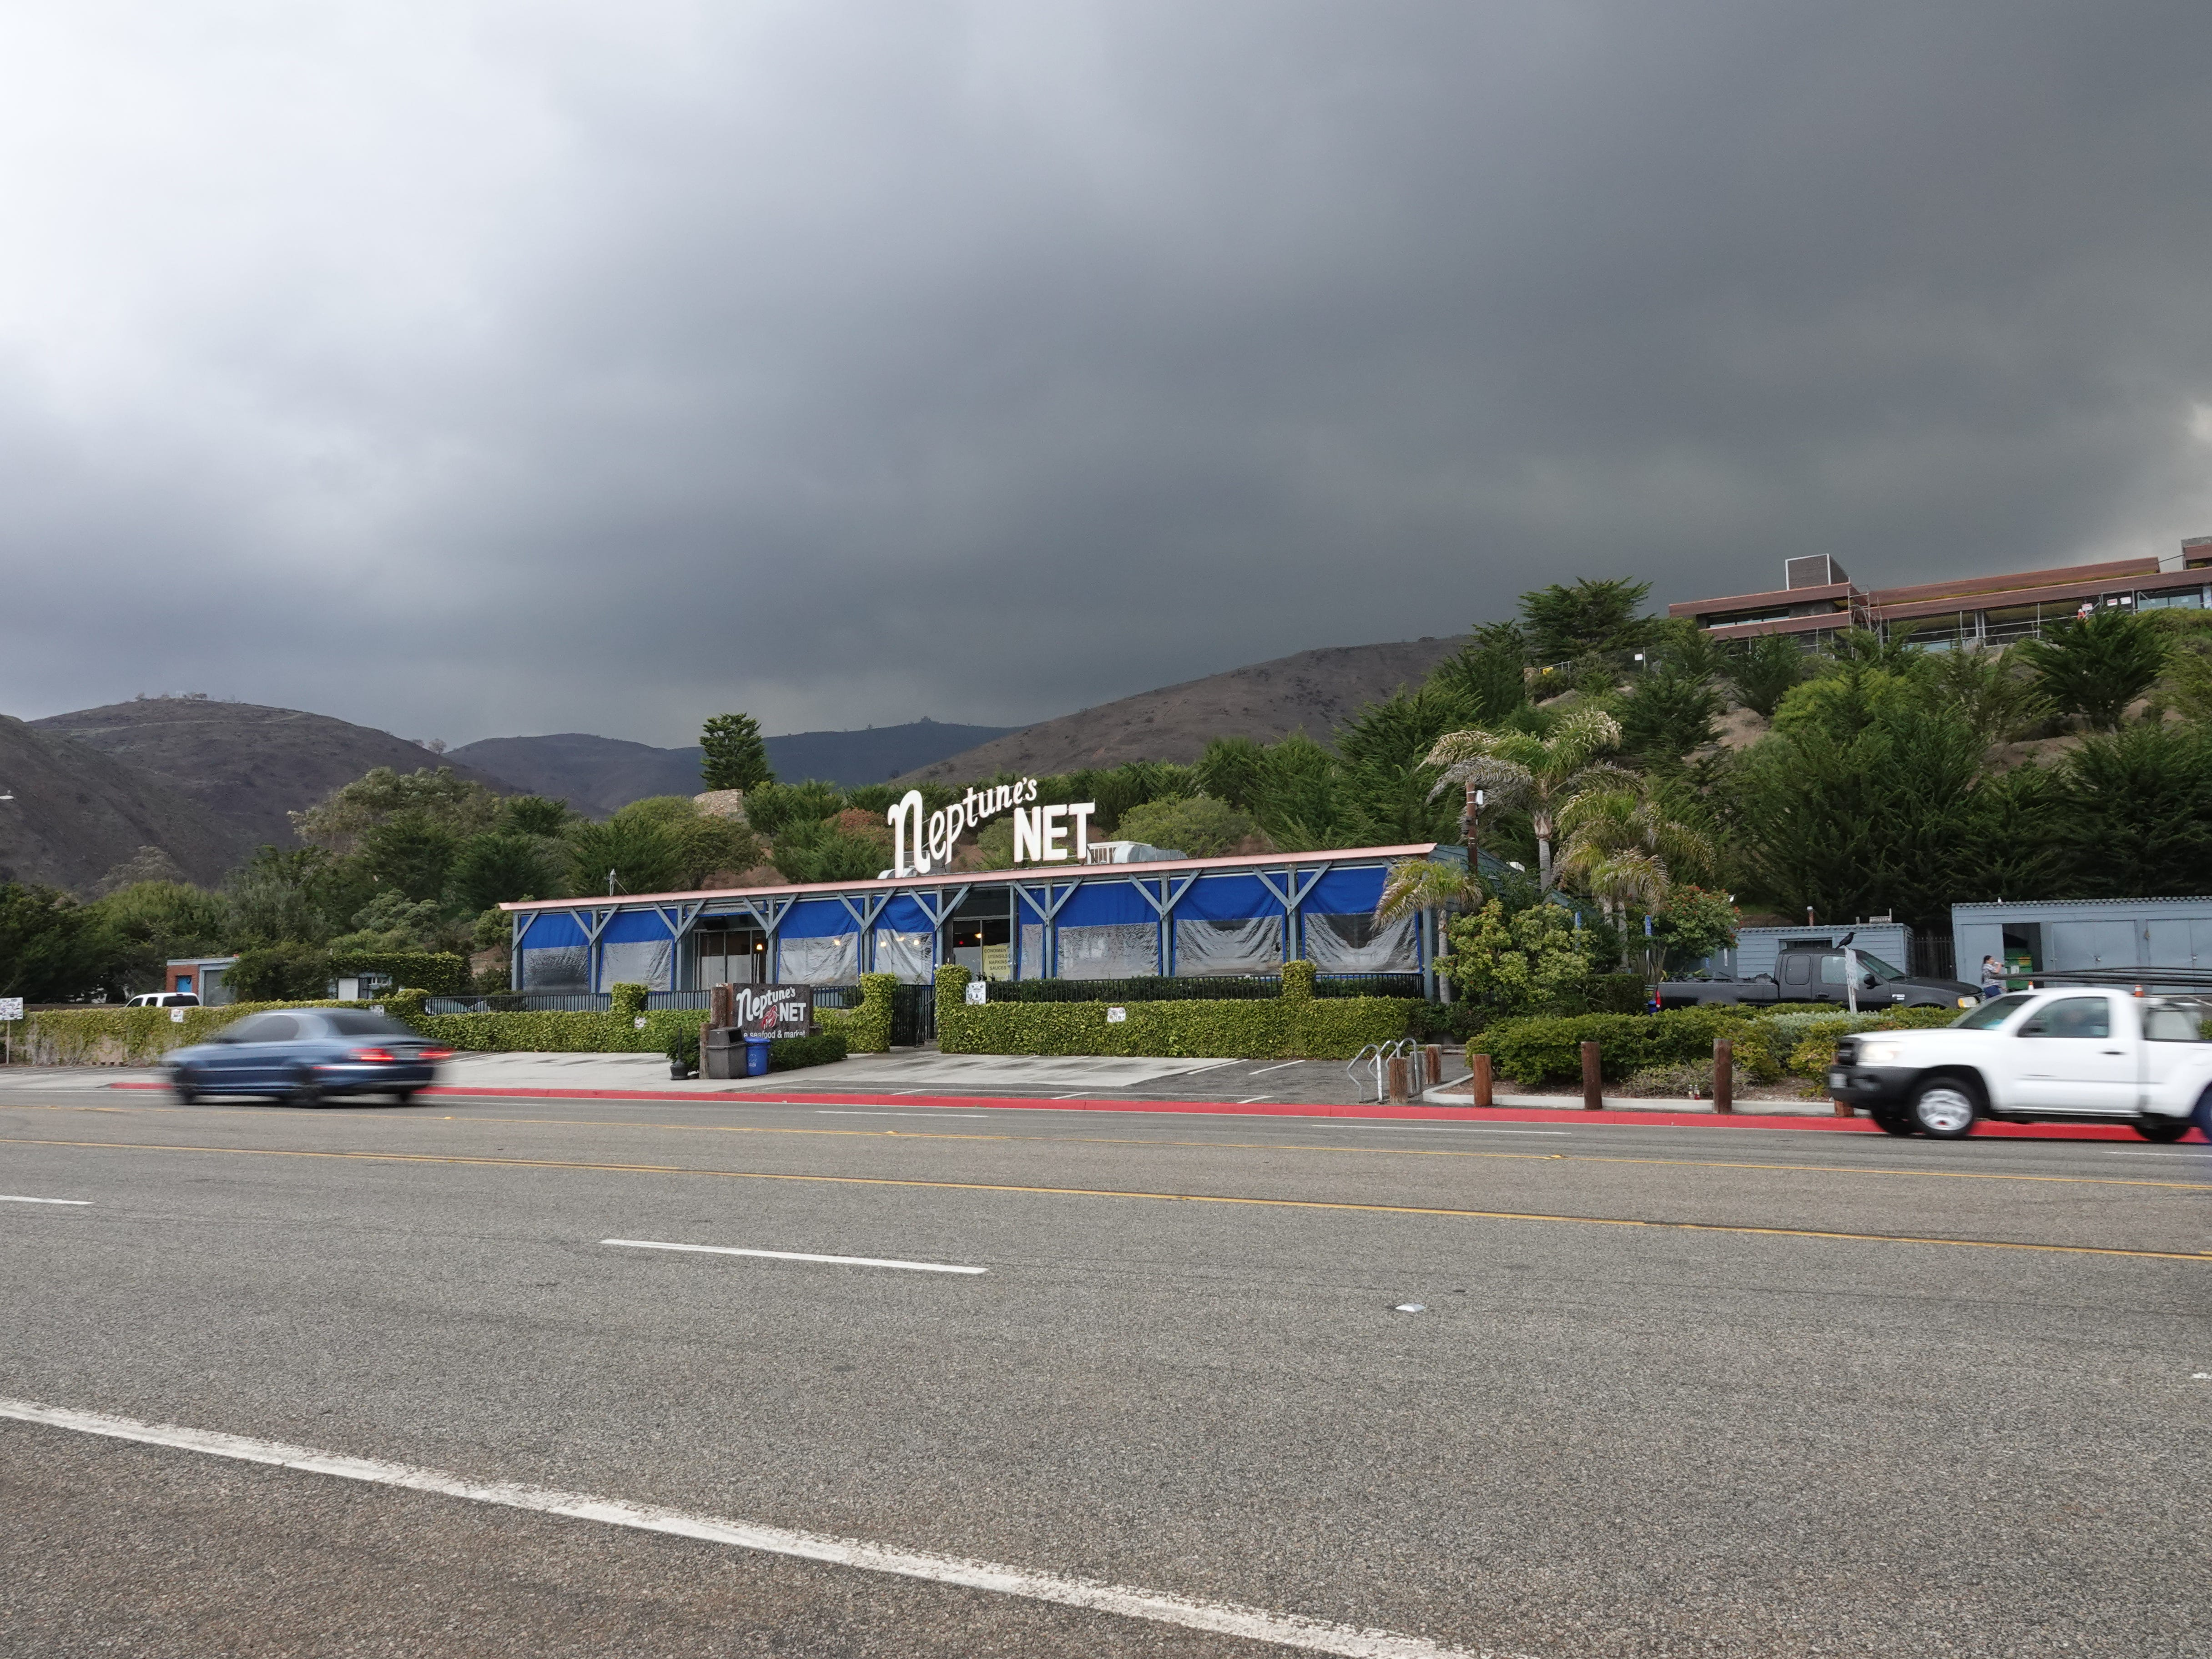 Dark clouds loom behind Neptune's Net on Pacific Coast Highway Saturday as a storm system moved into the area.